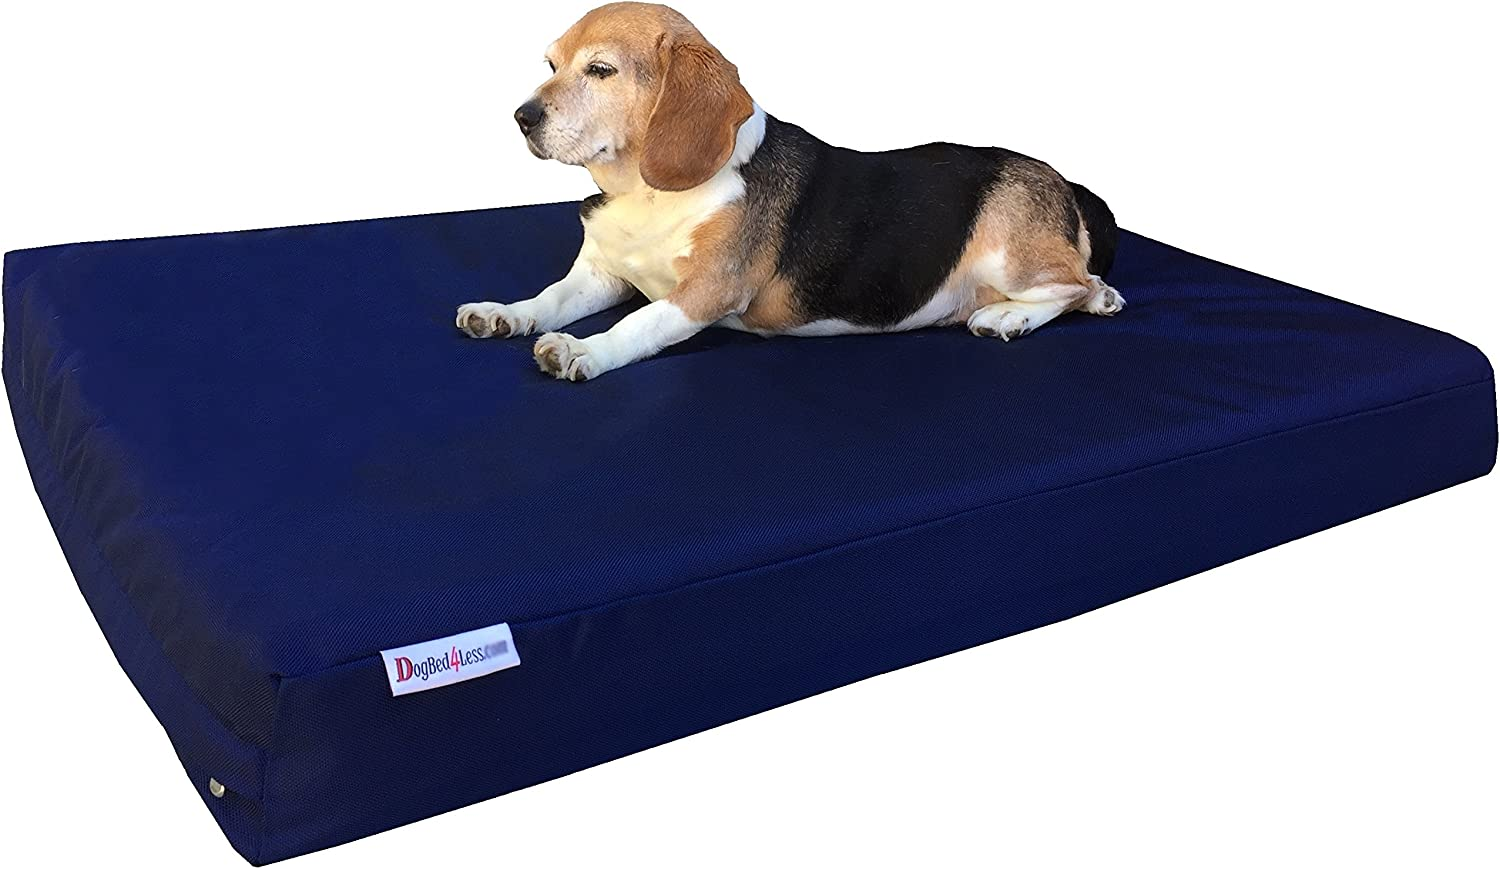 Dogbed4less Orthopedic Dog Bed with Memory Foam for Medium Large Pet, Waterproof Liner with Strong Ballistic Nylon bluee External Cover, 41X27X4 Inch (Fit 42X28 Crate)